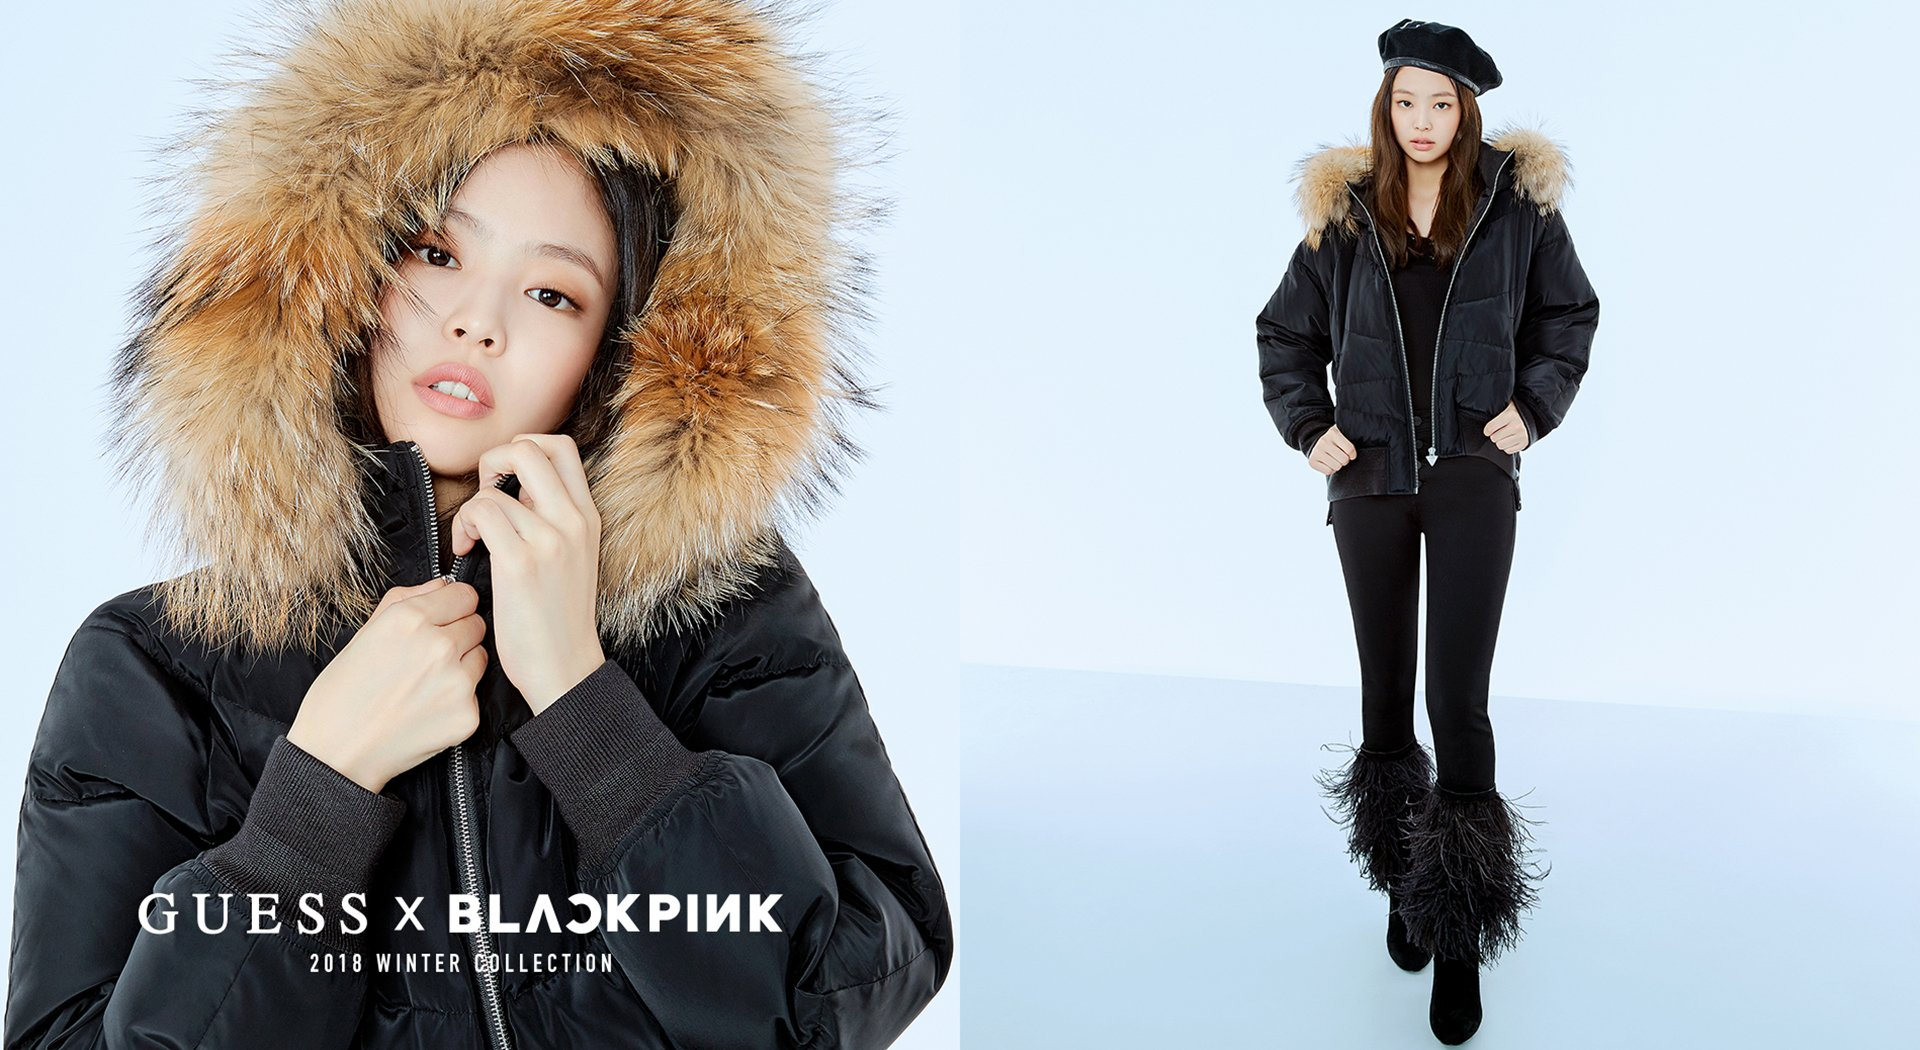 5 Blackpink Jennie Guess Winter Collection 2018 Coat Jacket